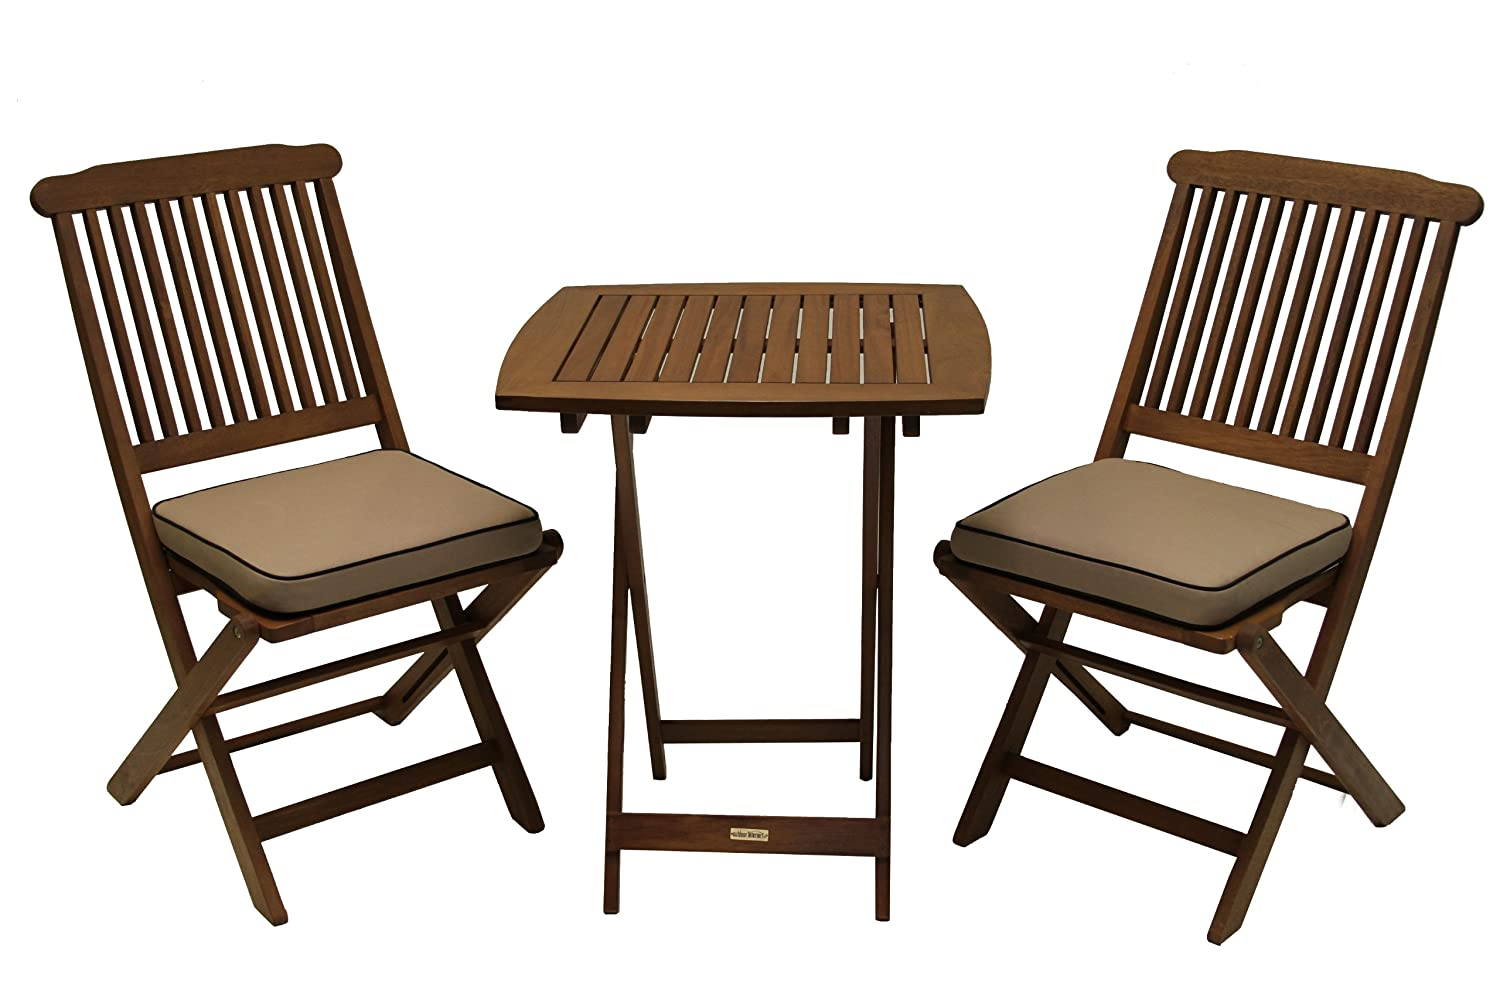 Wood patio furniture sets at the galleria for At home patio furniture